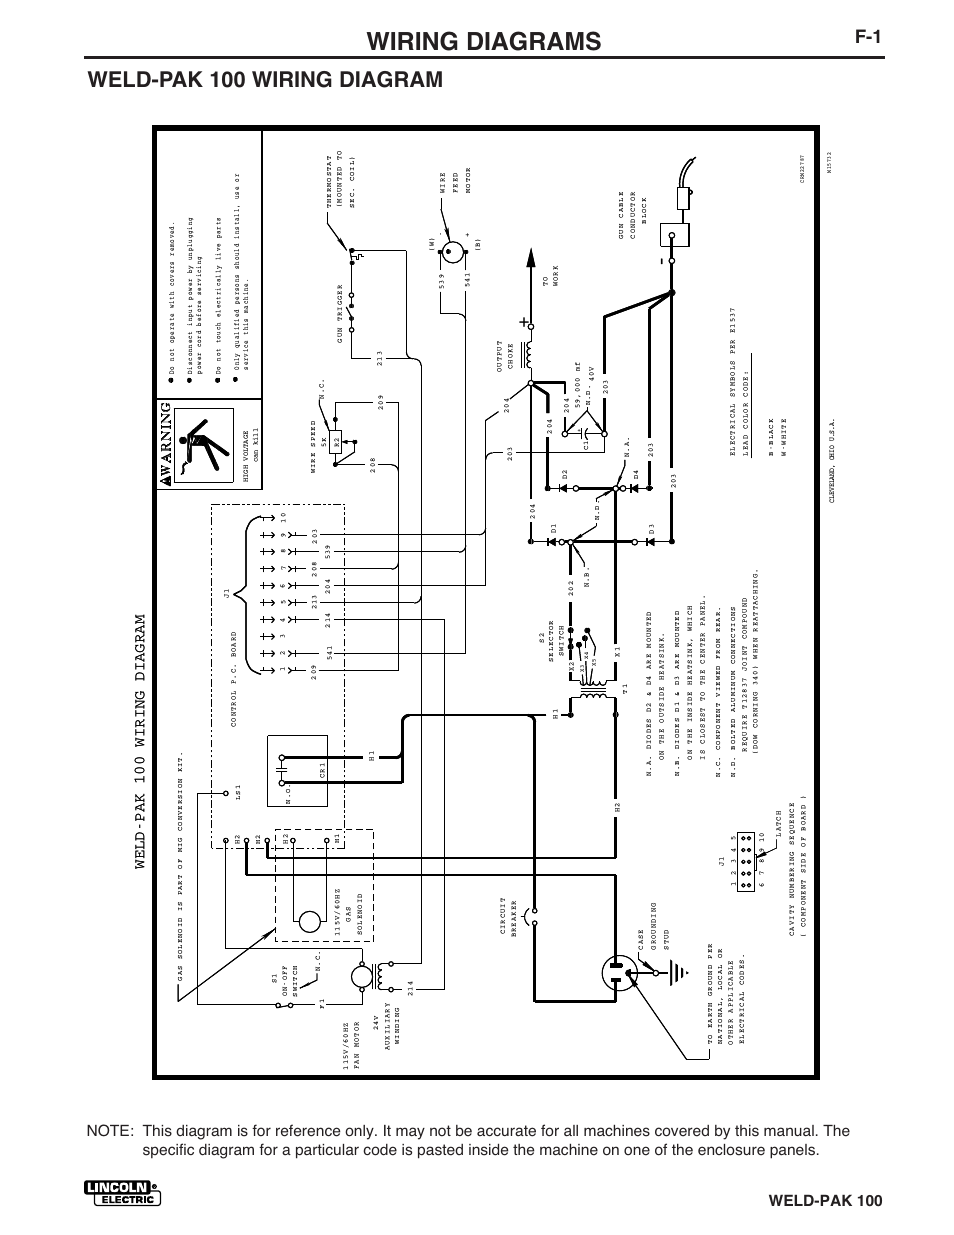 lincoln-electric-weld-pack-100-plus-im546-page45  Conductor Thermostat Wire Diagram on